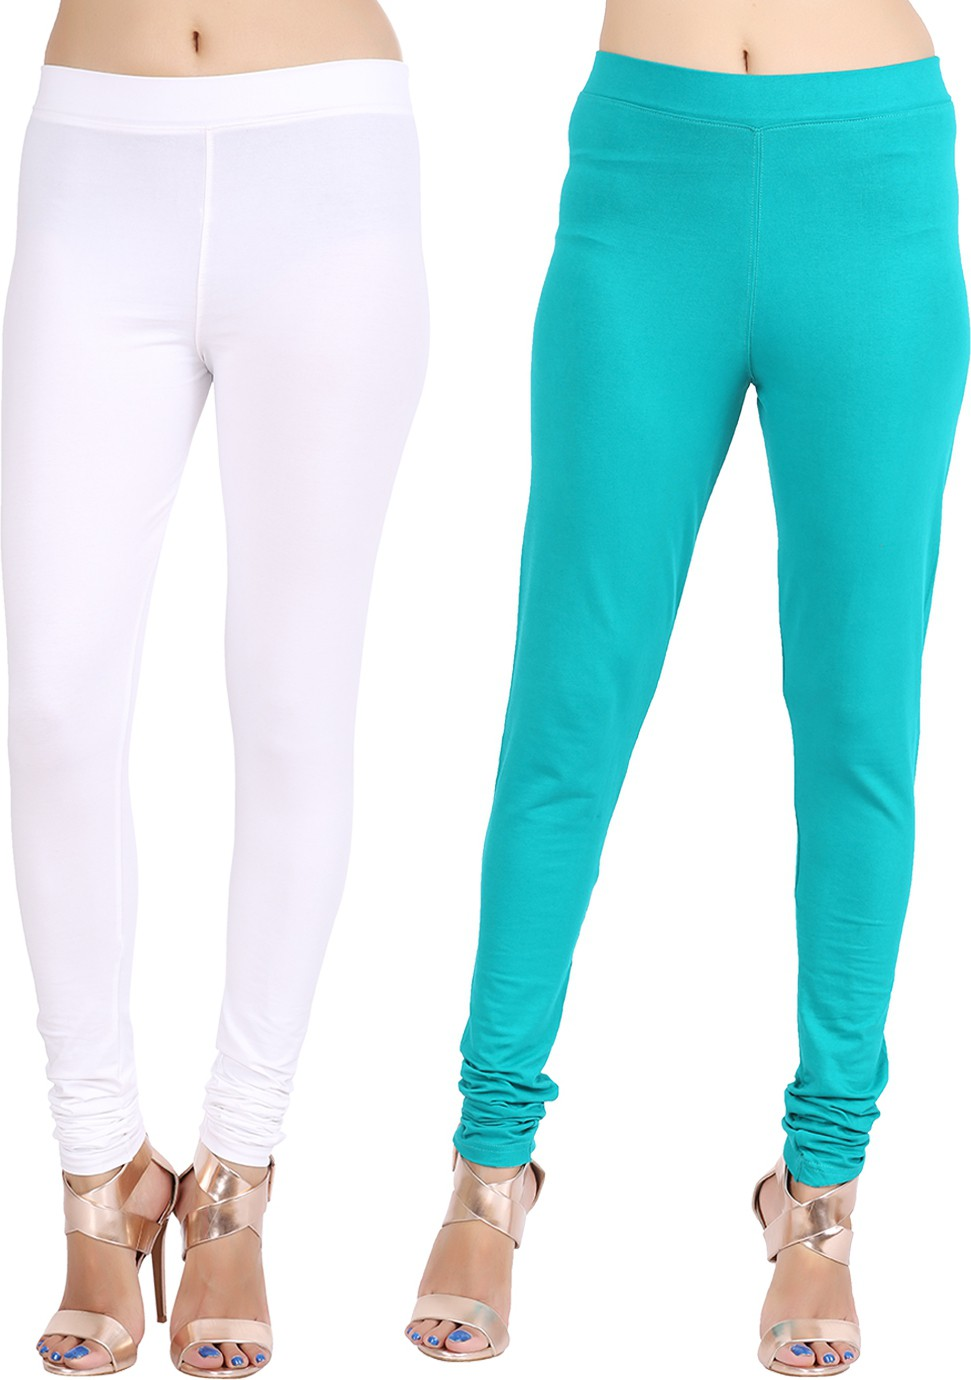 Lula Ms Womens White, Dark Green Leggings(Pack of 2)